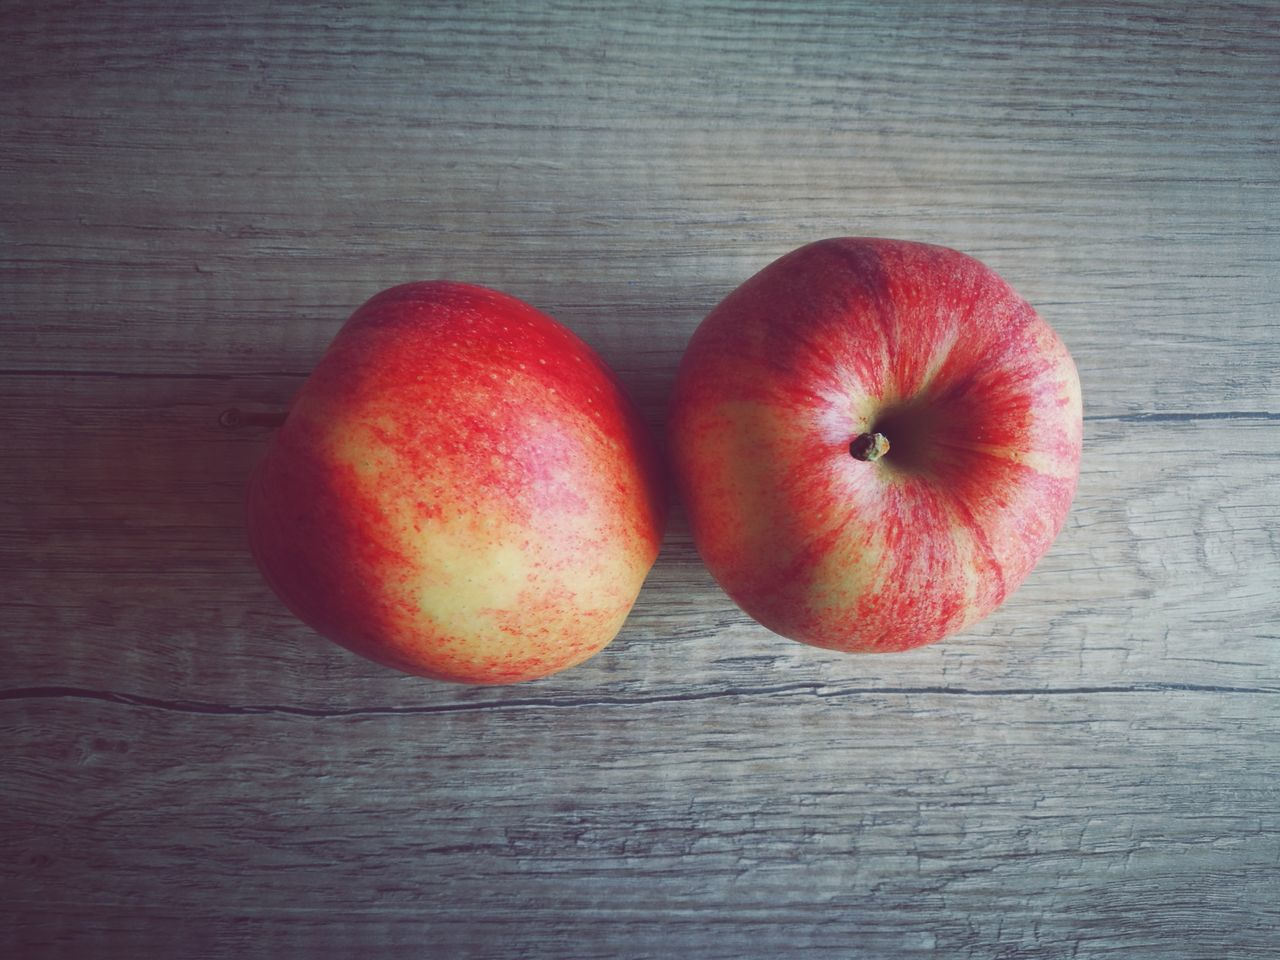 Healthy Eating Fruit Food And Drink Freshness Food Table Red Wood - Material Close-up Gala Apple An Apple A Day Sweet Food Huaweiphotography Still Life Minimalism HuaweiP9 Fresh Healthy Food Healthy Lifestyle Vegetarian Food Vegan Apples Apple Apple - Fruit In A Row